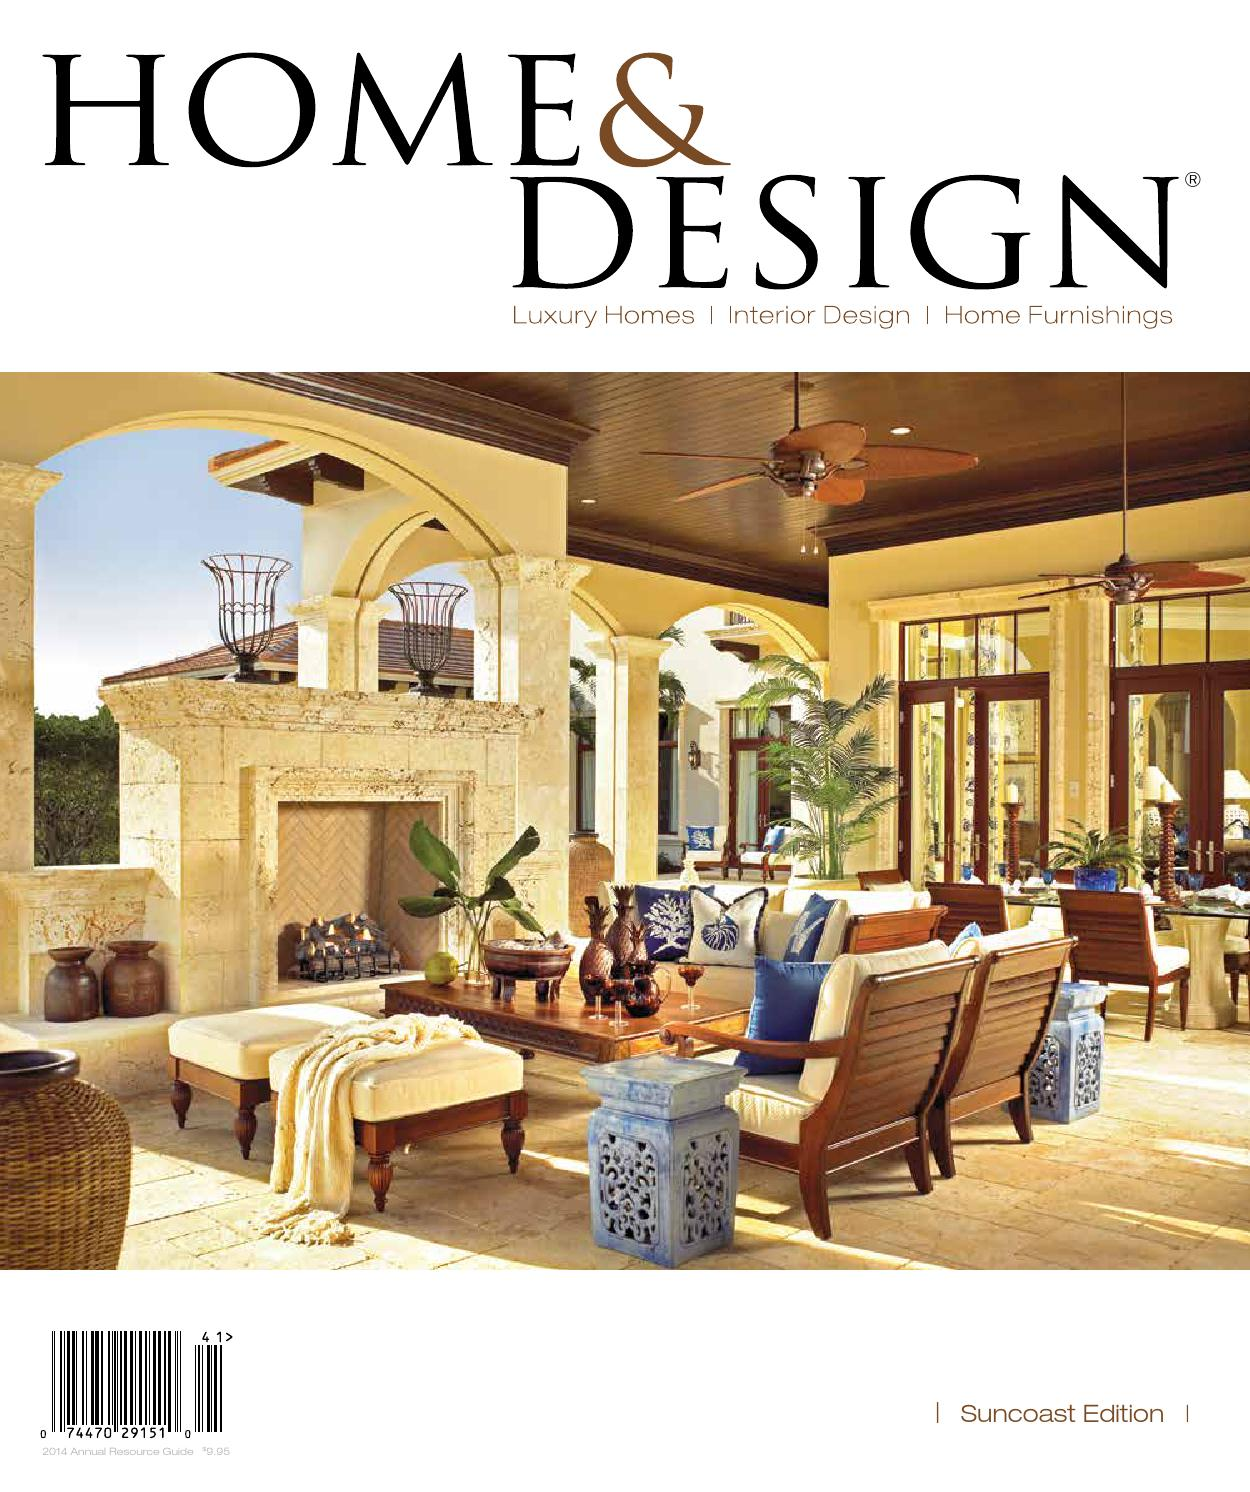 Home Design Magazine home & design magazine | annual resource guide 2014 | suncoast